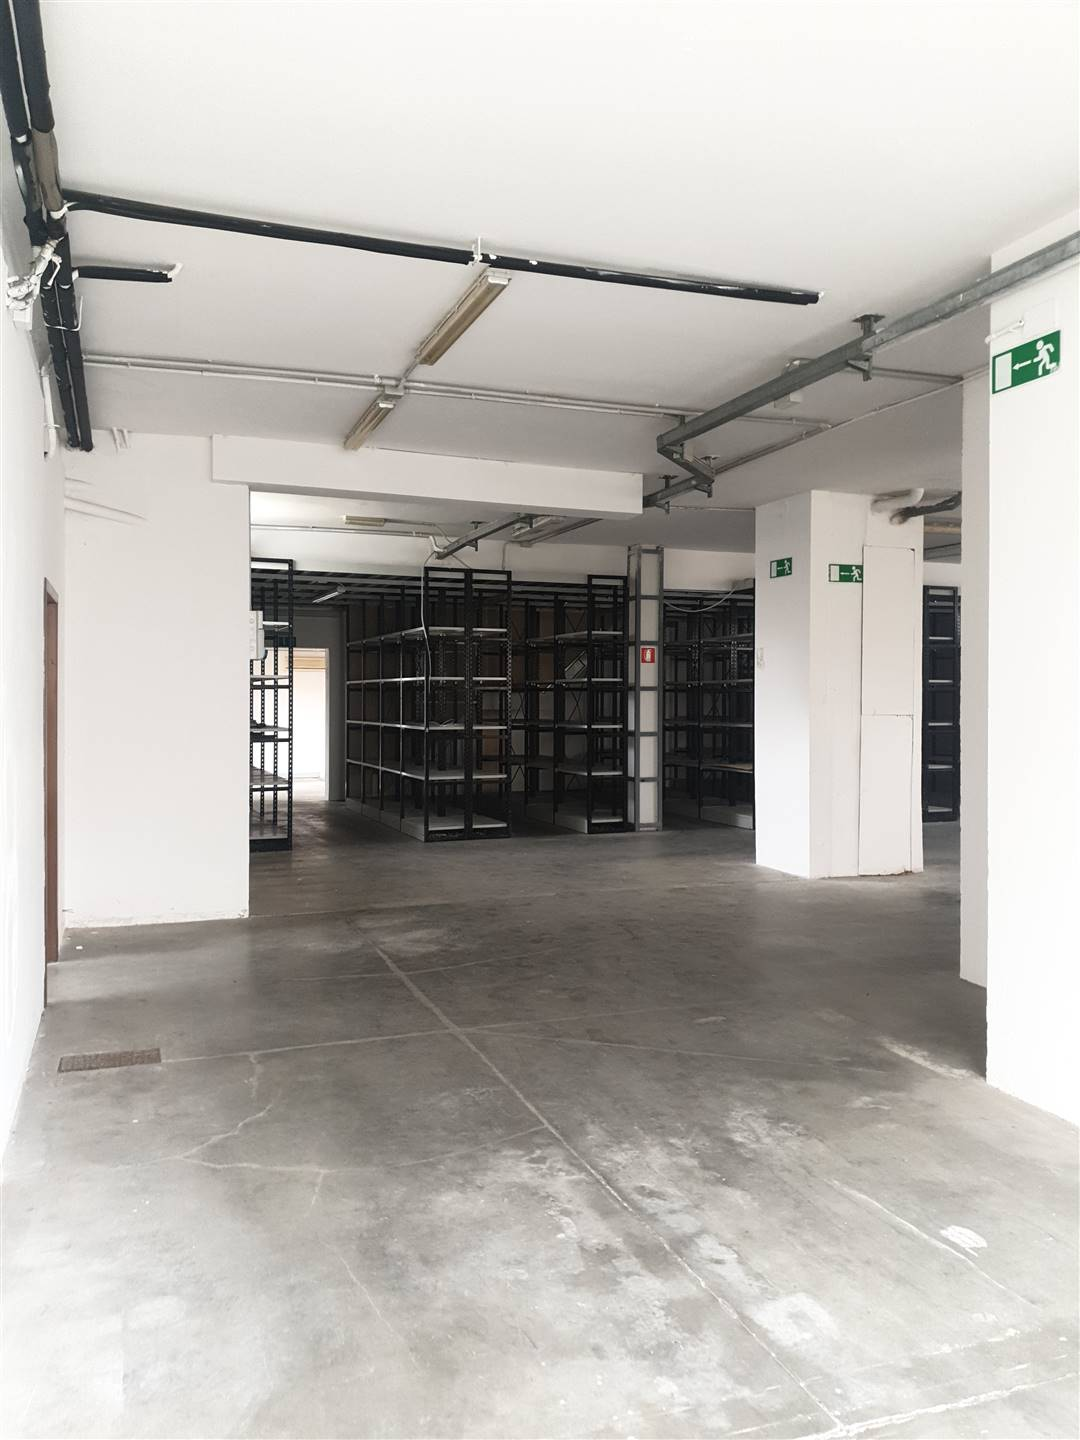 SETTIGNANO, FIRENZE, Industrial warehouse for rent of 420 Sq. mt., Good condition, Heating Individual heating system, Energetic class: G, placed at